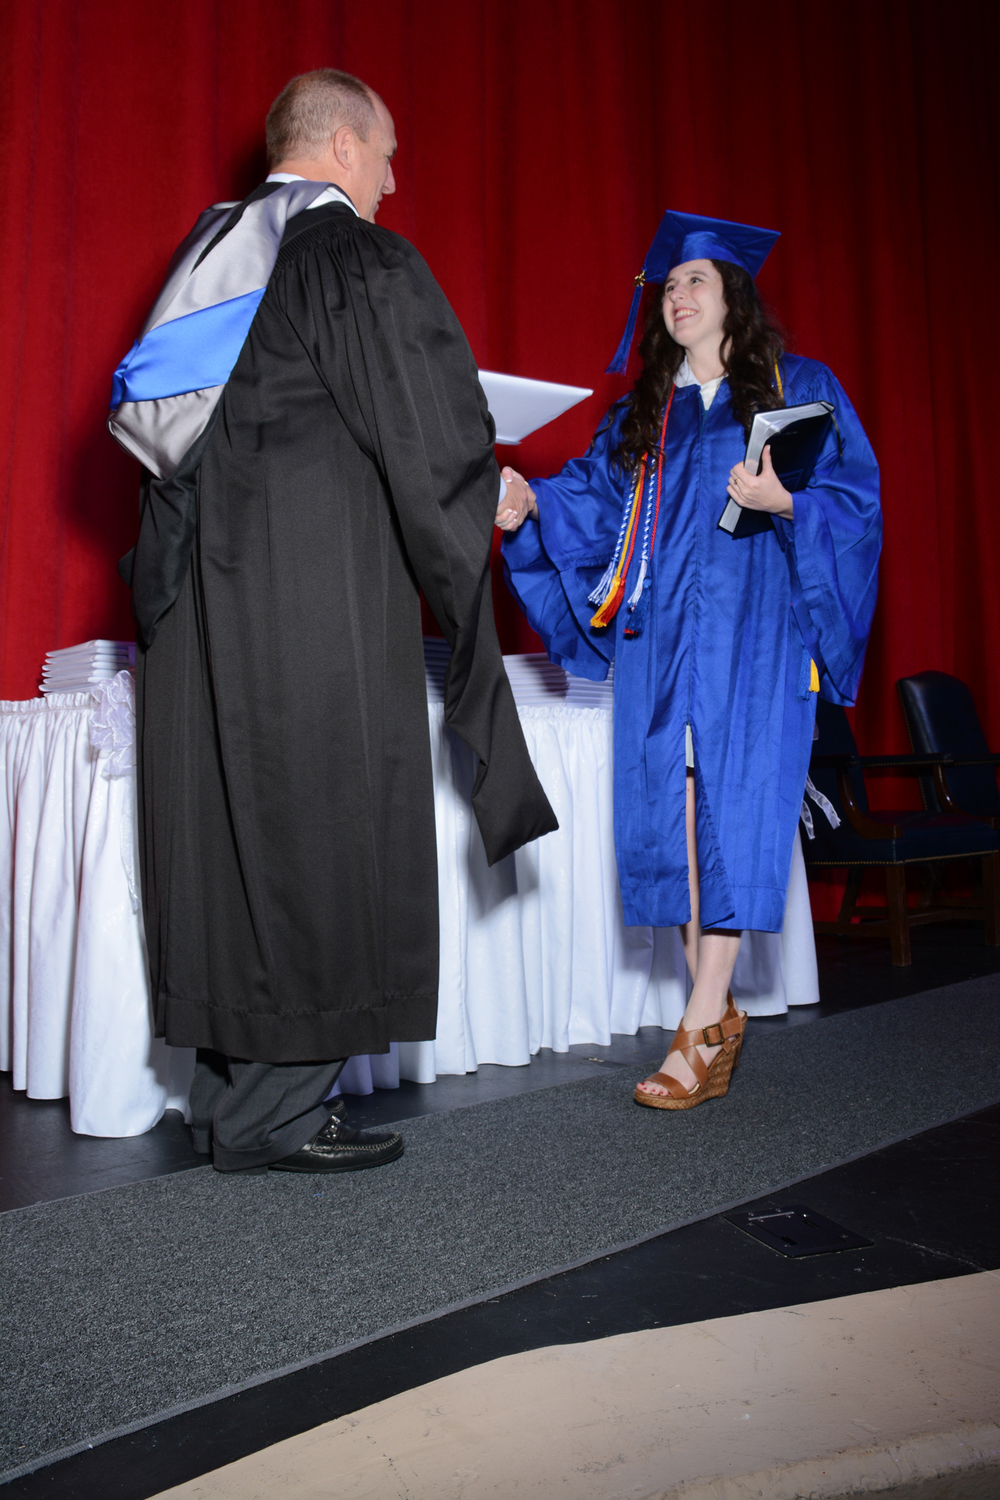 May16 GraduationPhotos47.jpg